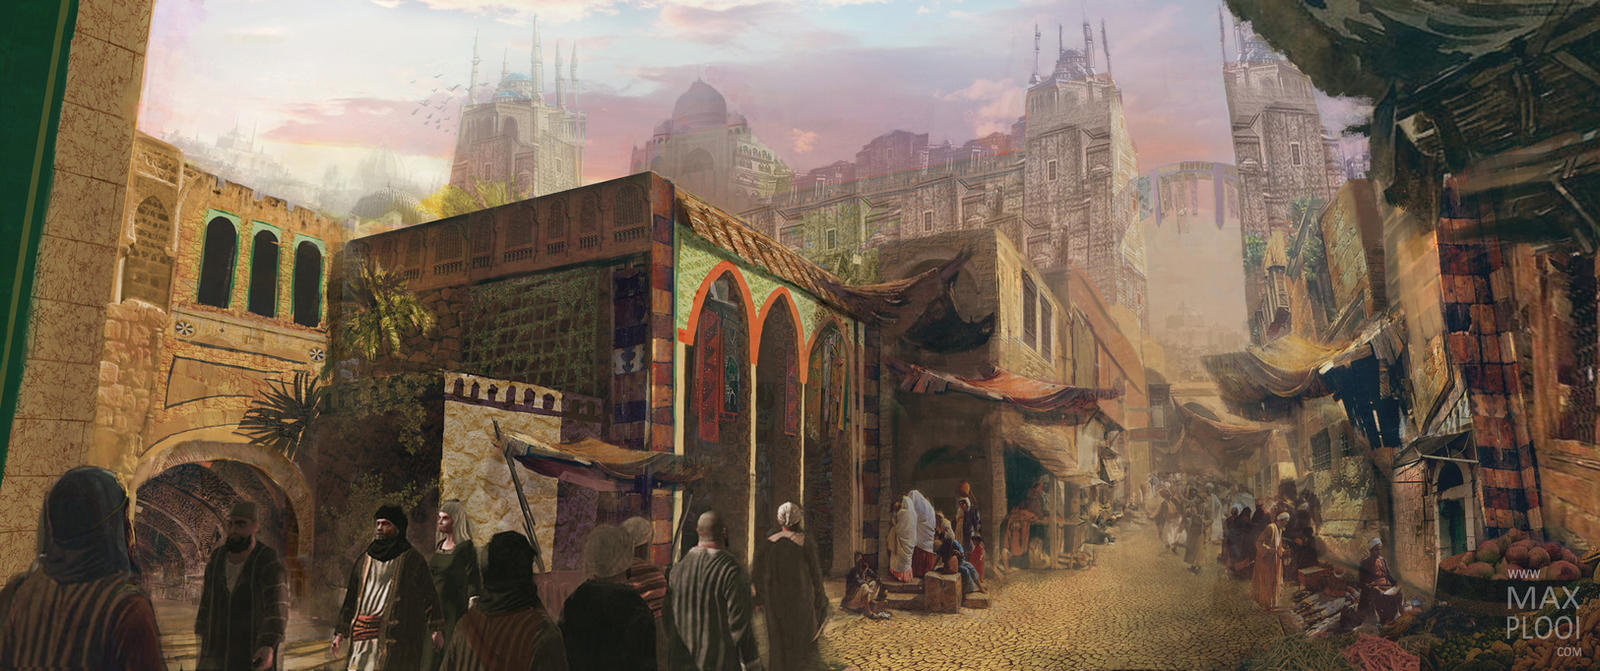 Arab City Street by Rage1793